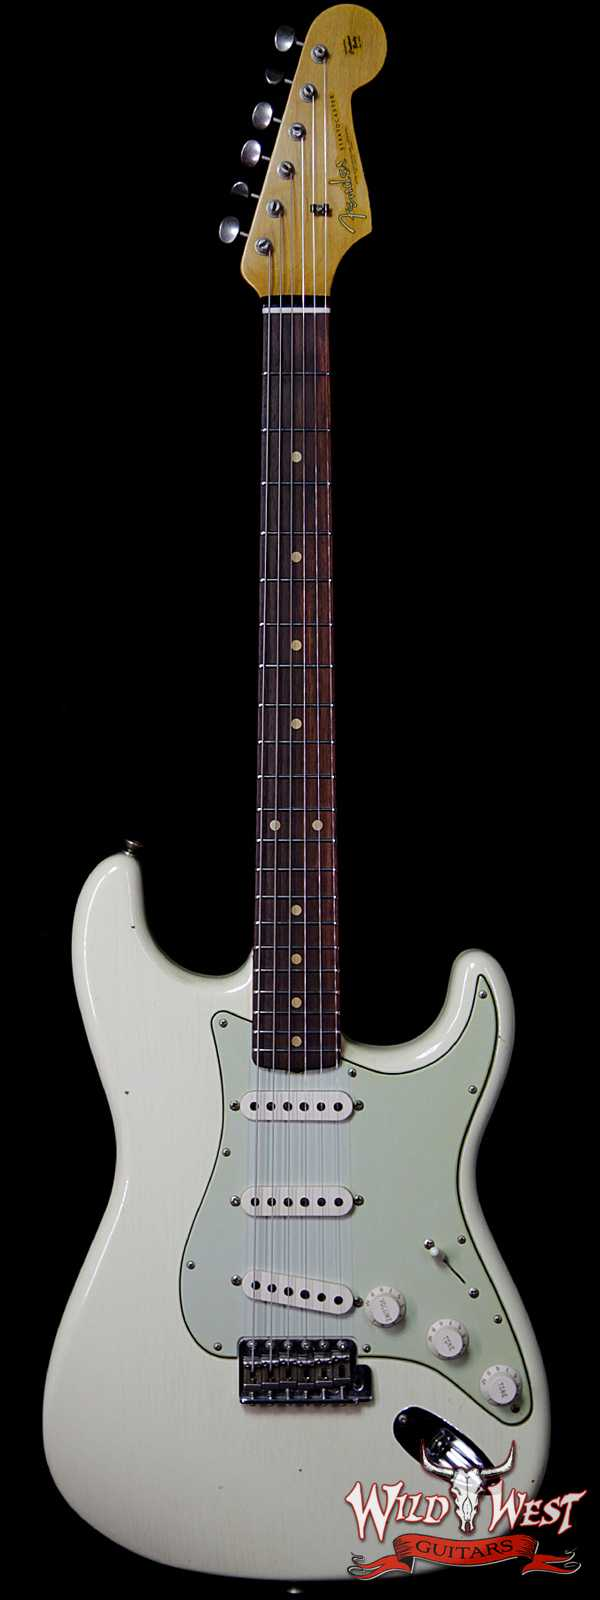 Fender Custom Shop 1961 Stratocaster Journeyman Relic w/ Dirty Neck AAA Rosewood Slab Fingerboard Vintage White